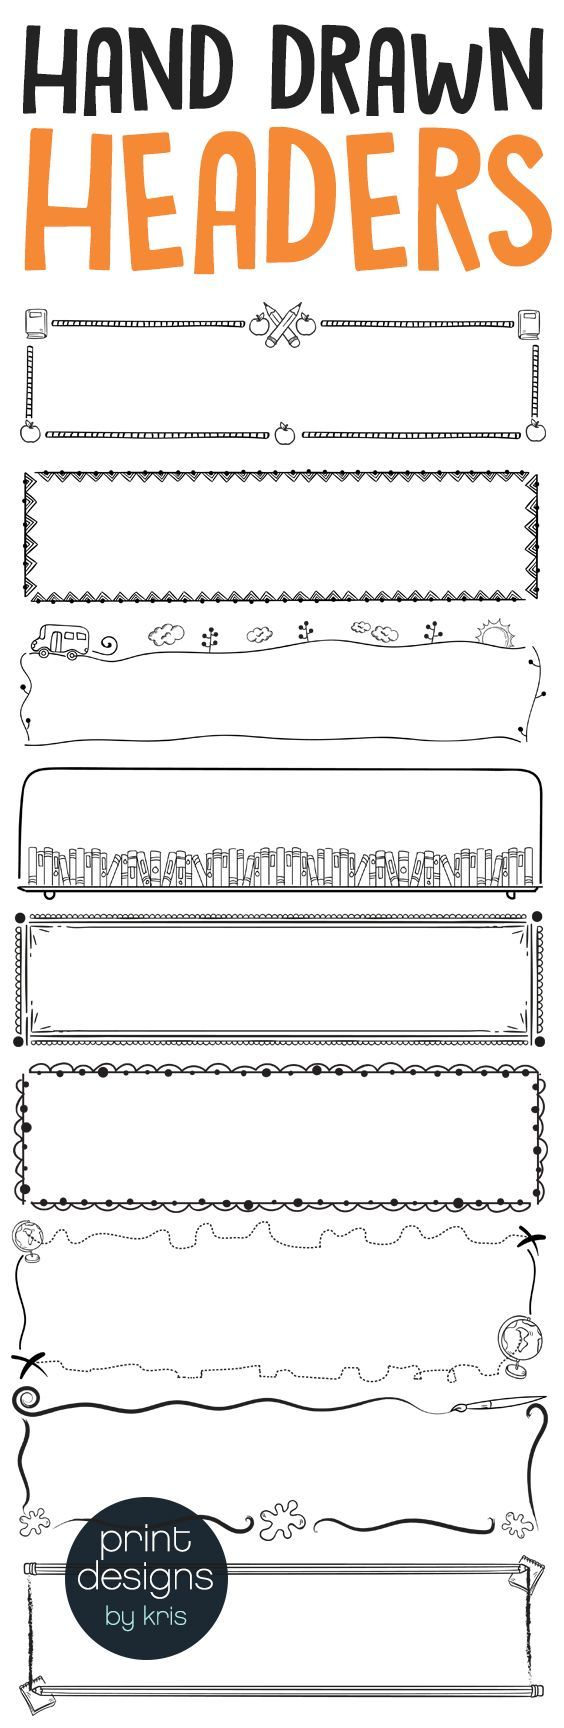 hight resolution of Hand drawn header boxes perfect for dressing up a worksheet